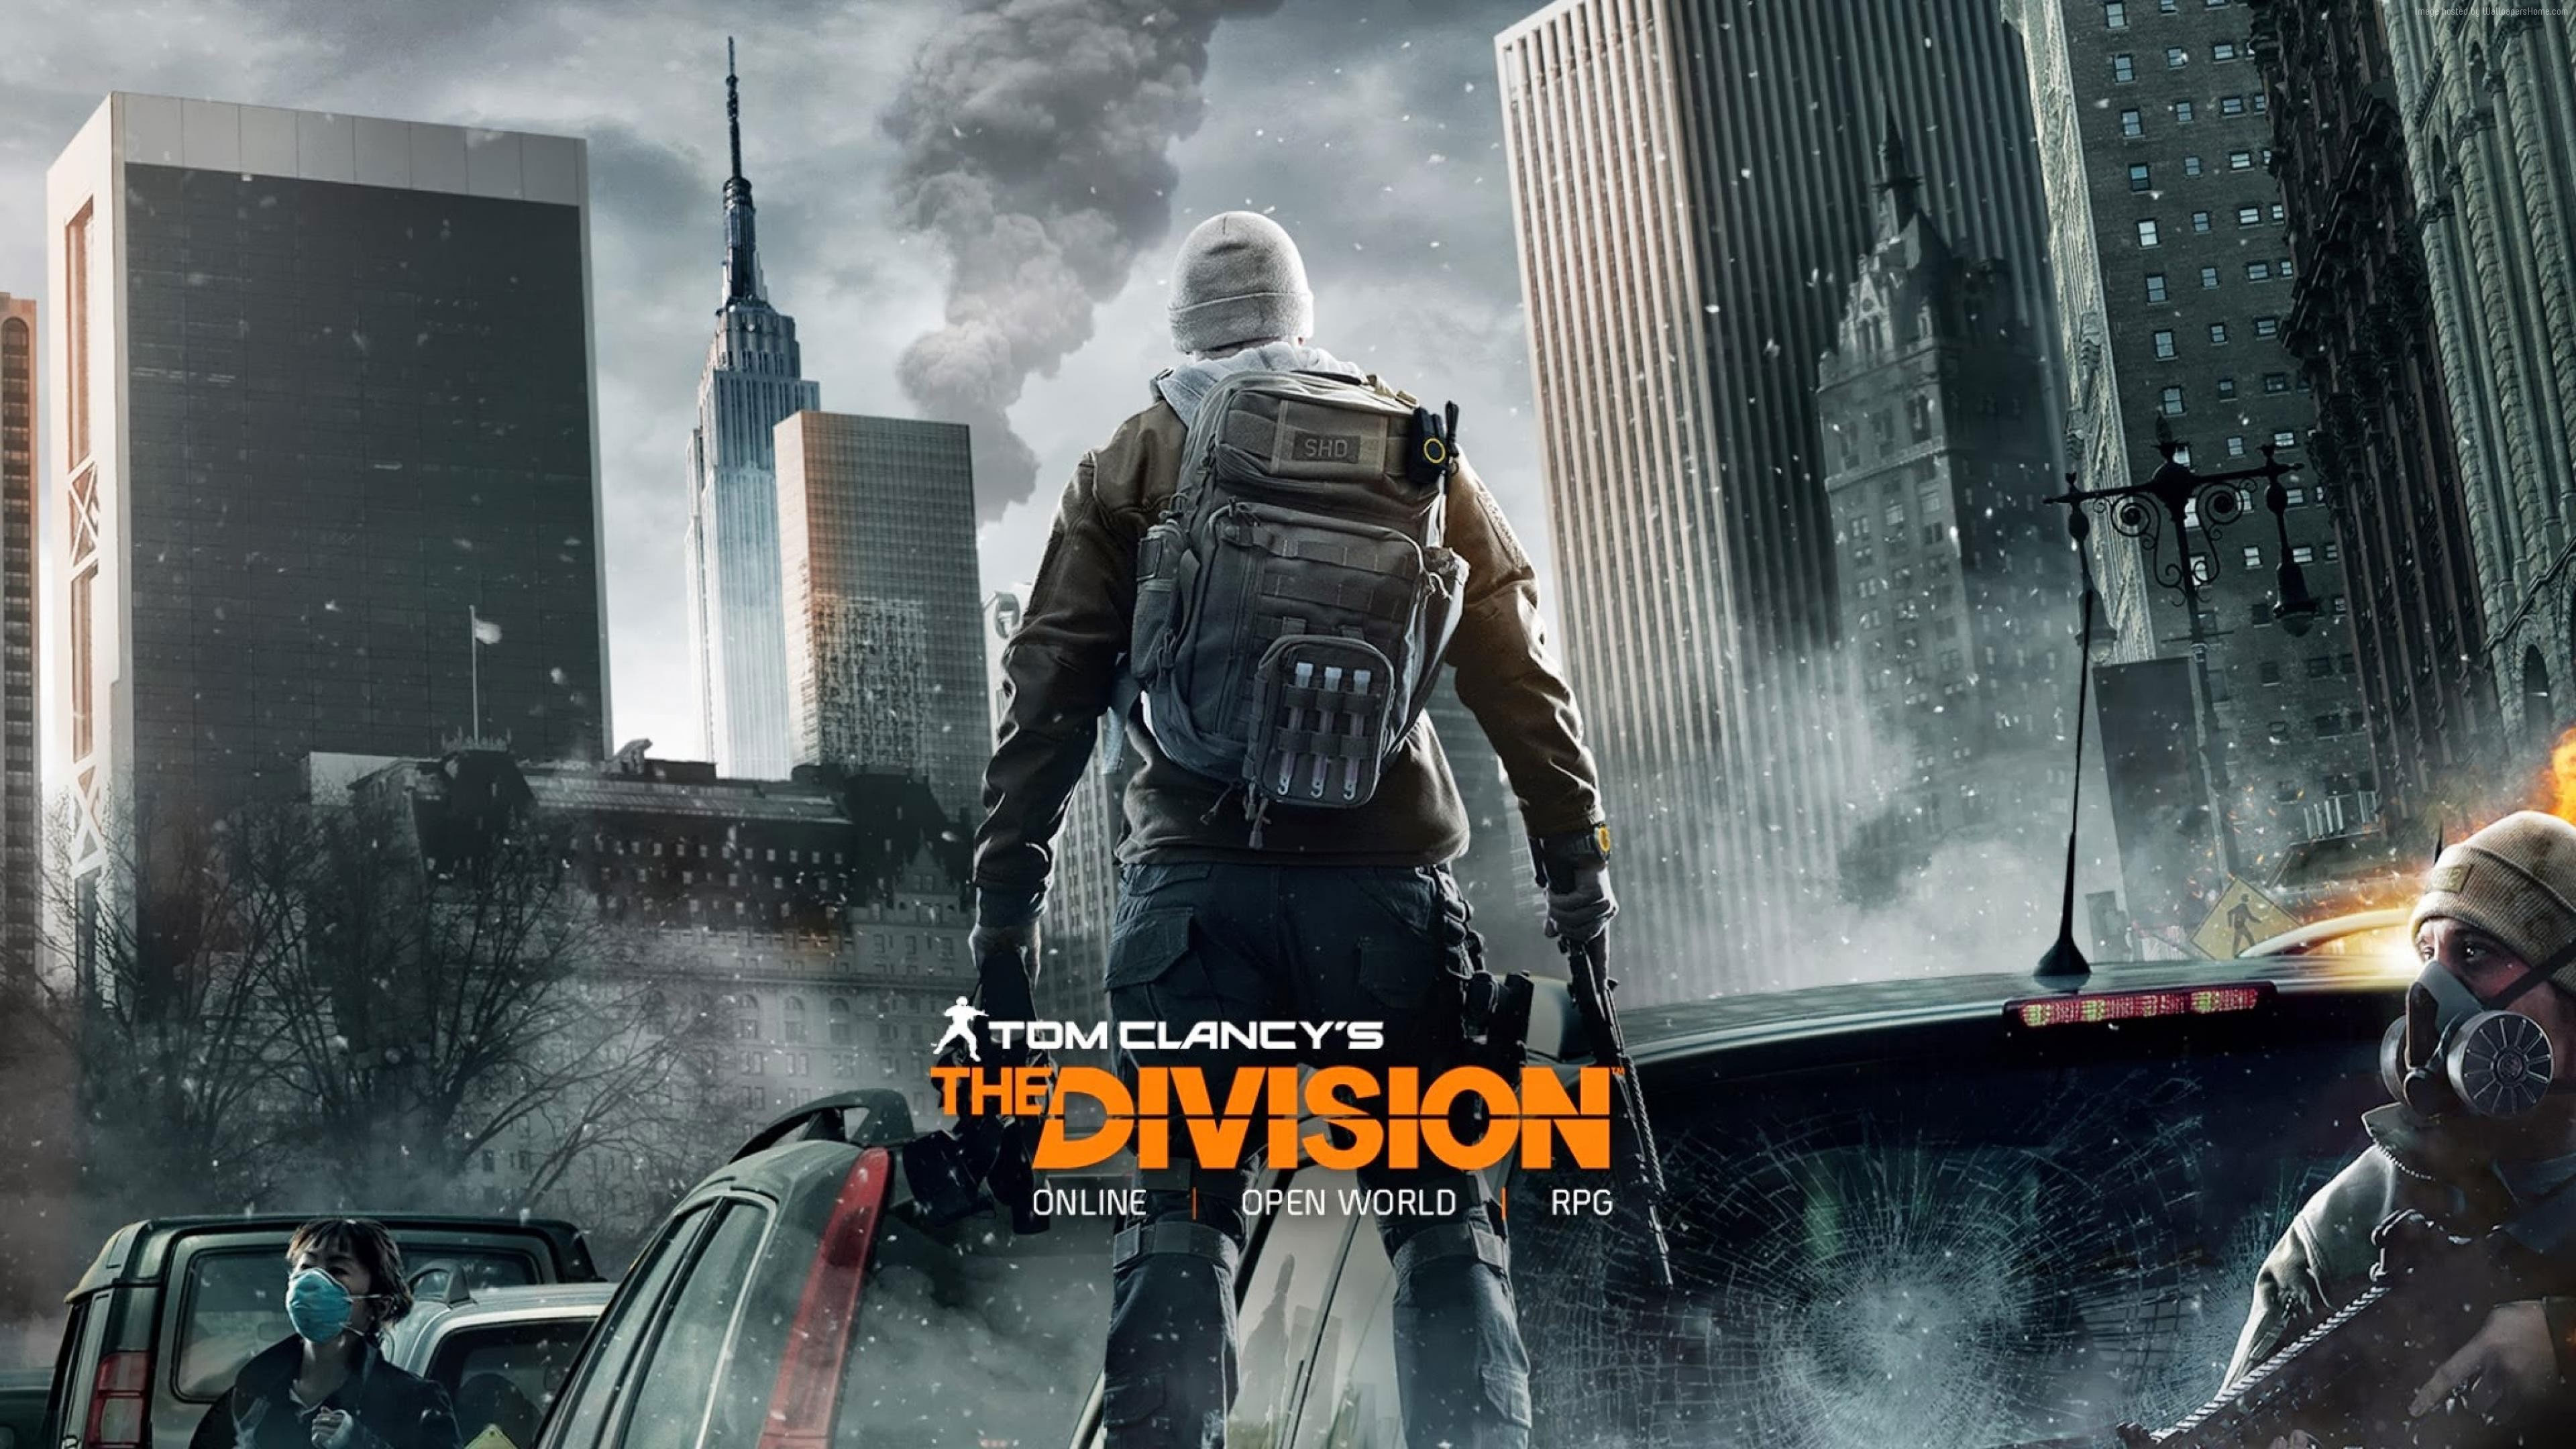 The Division 4K Wallpaper